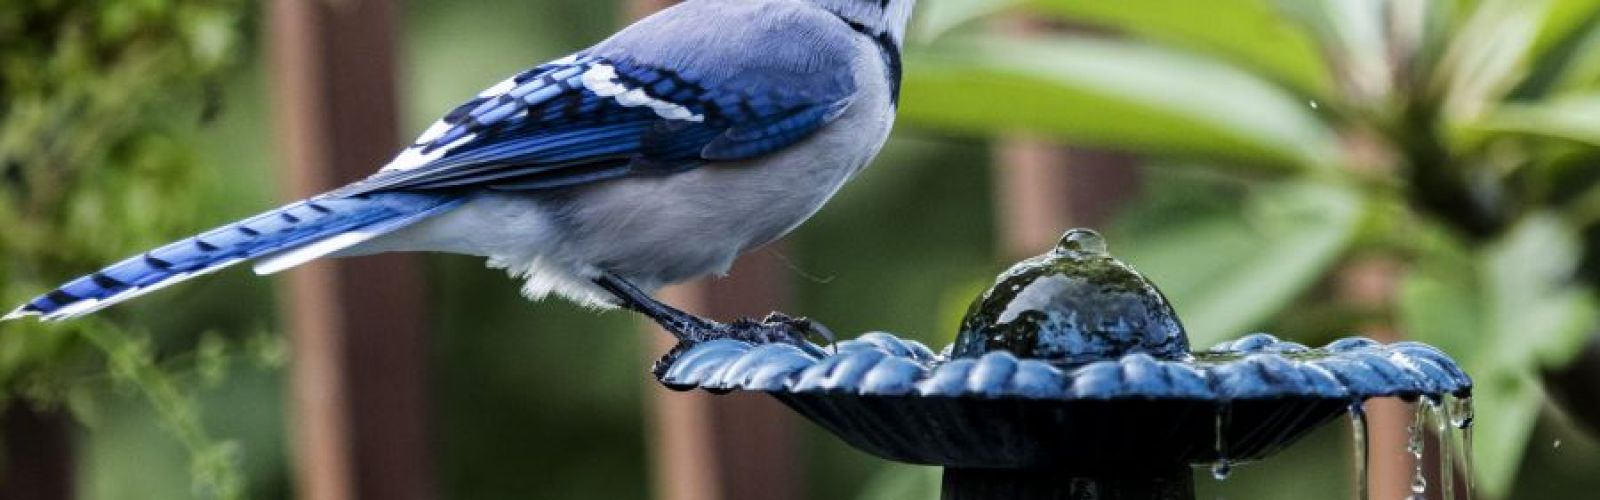 a small blue bird perched on top of a wooden table